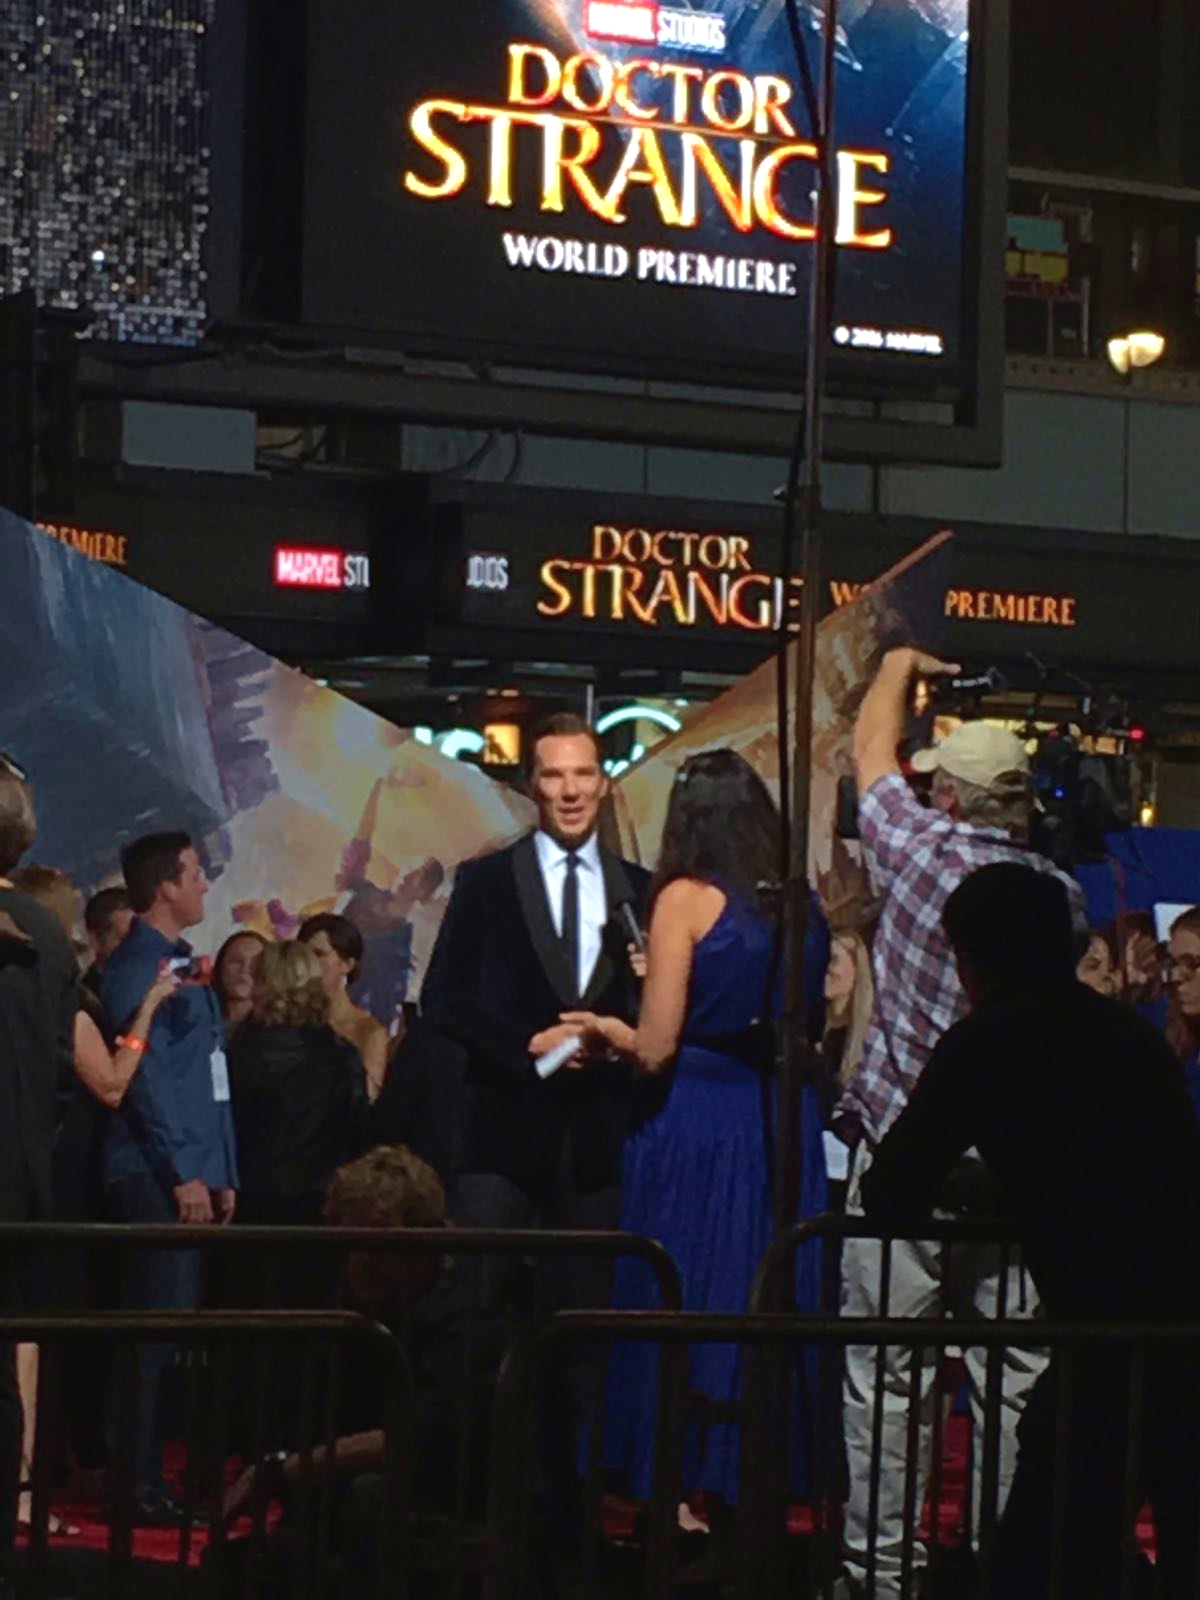 How to attend a red carpet event in Los Angeles. Benedict Cumberbatch